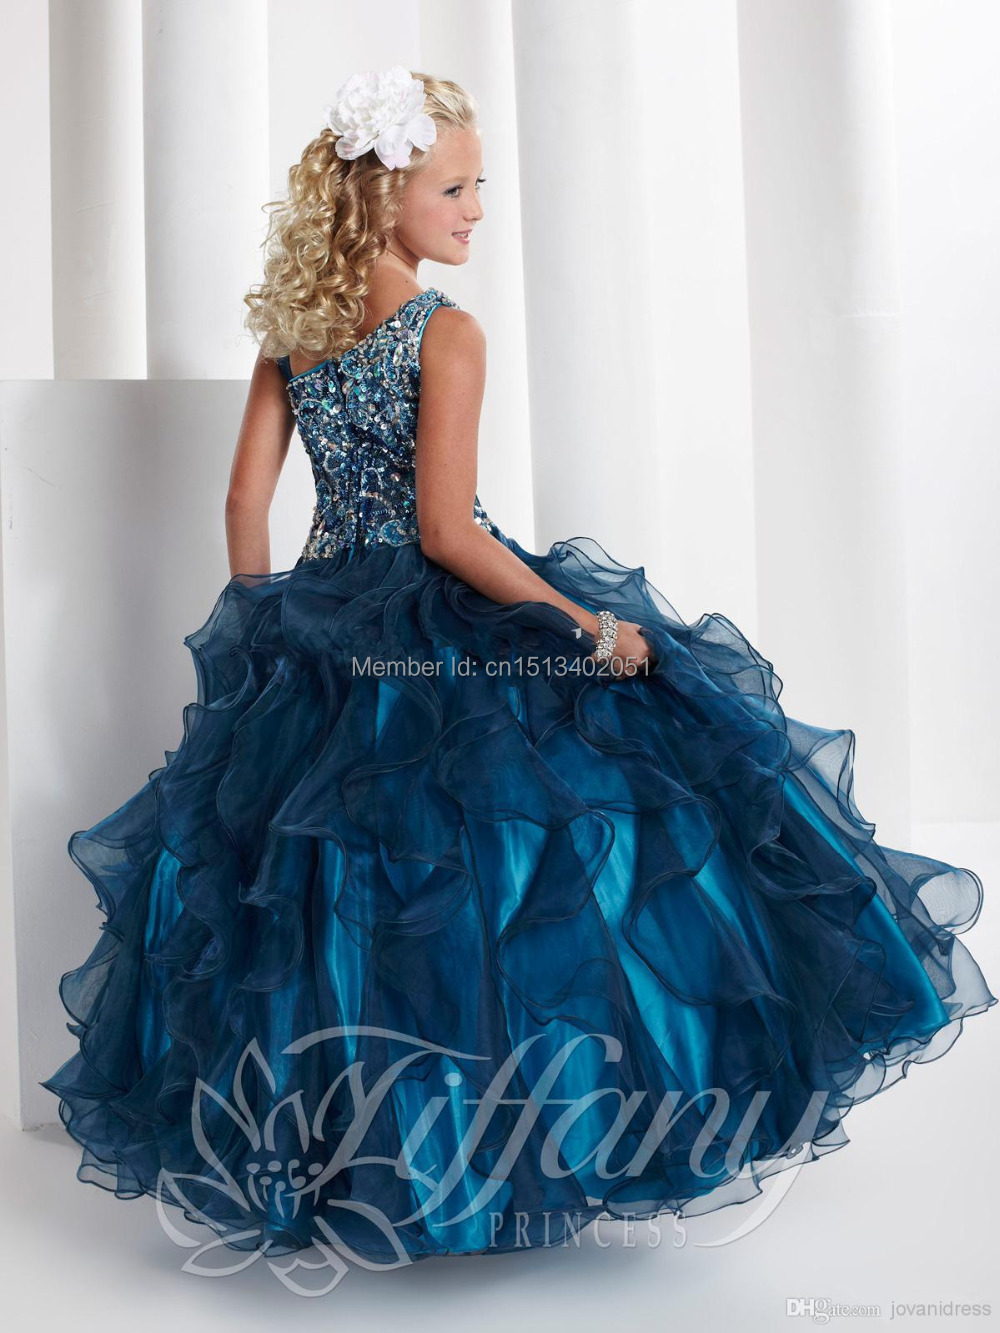 Pics photos girls party dress christmas - Aliexpress Com Buy 2015 New Blue Princess Girl Party Dresses Flower Sequined Tutu Style Wedding Dress For Christmas Girls Clothes From Reliable Dress